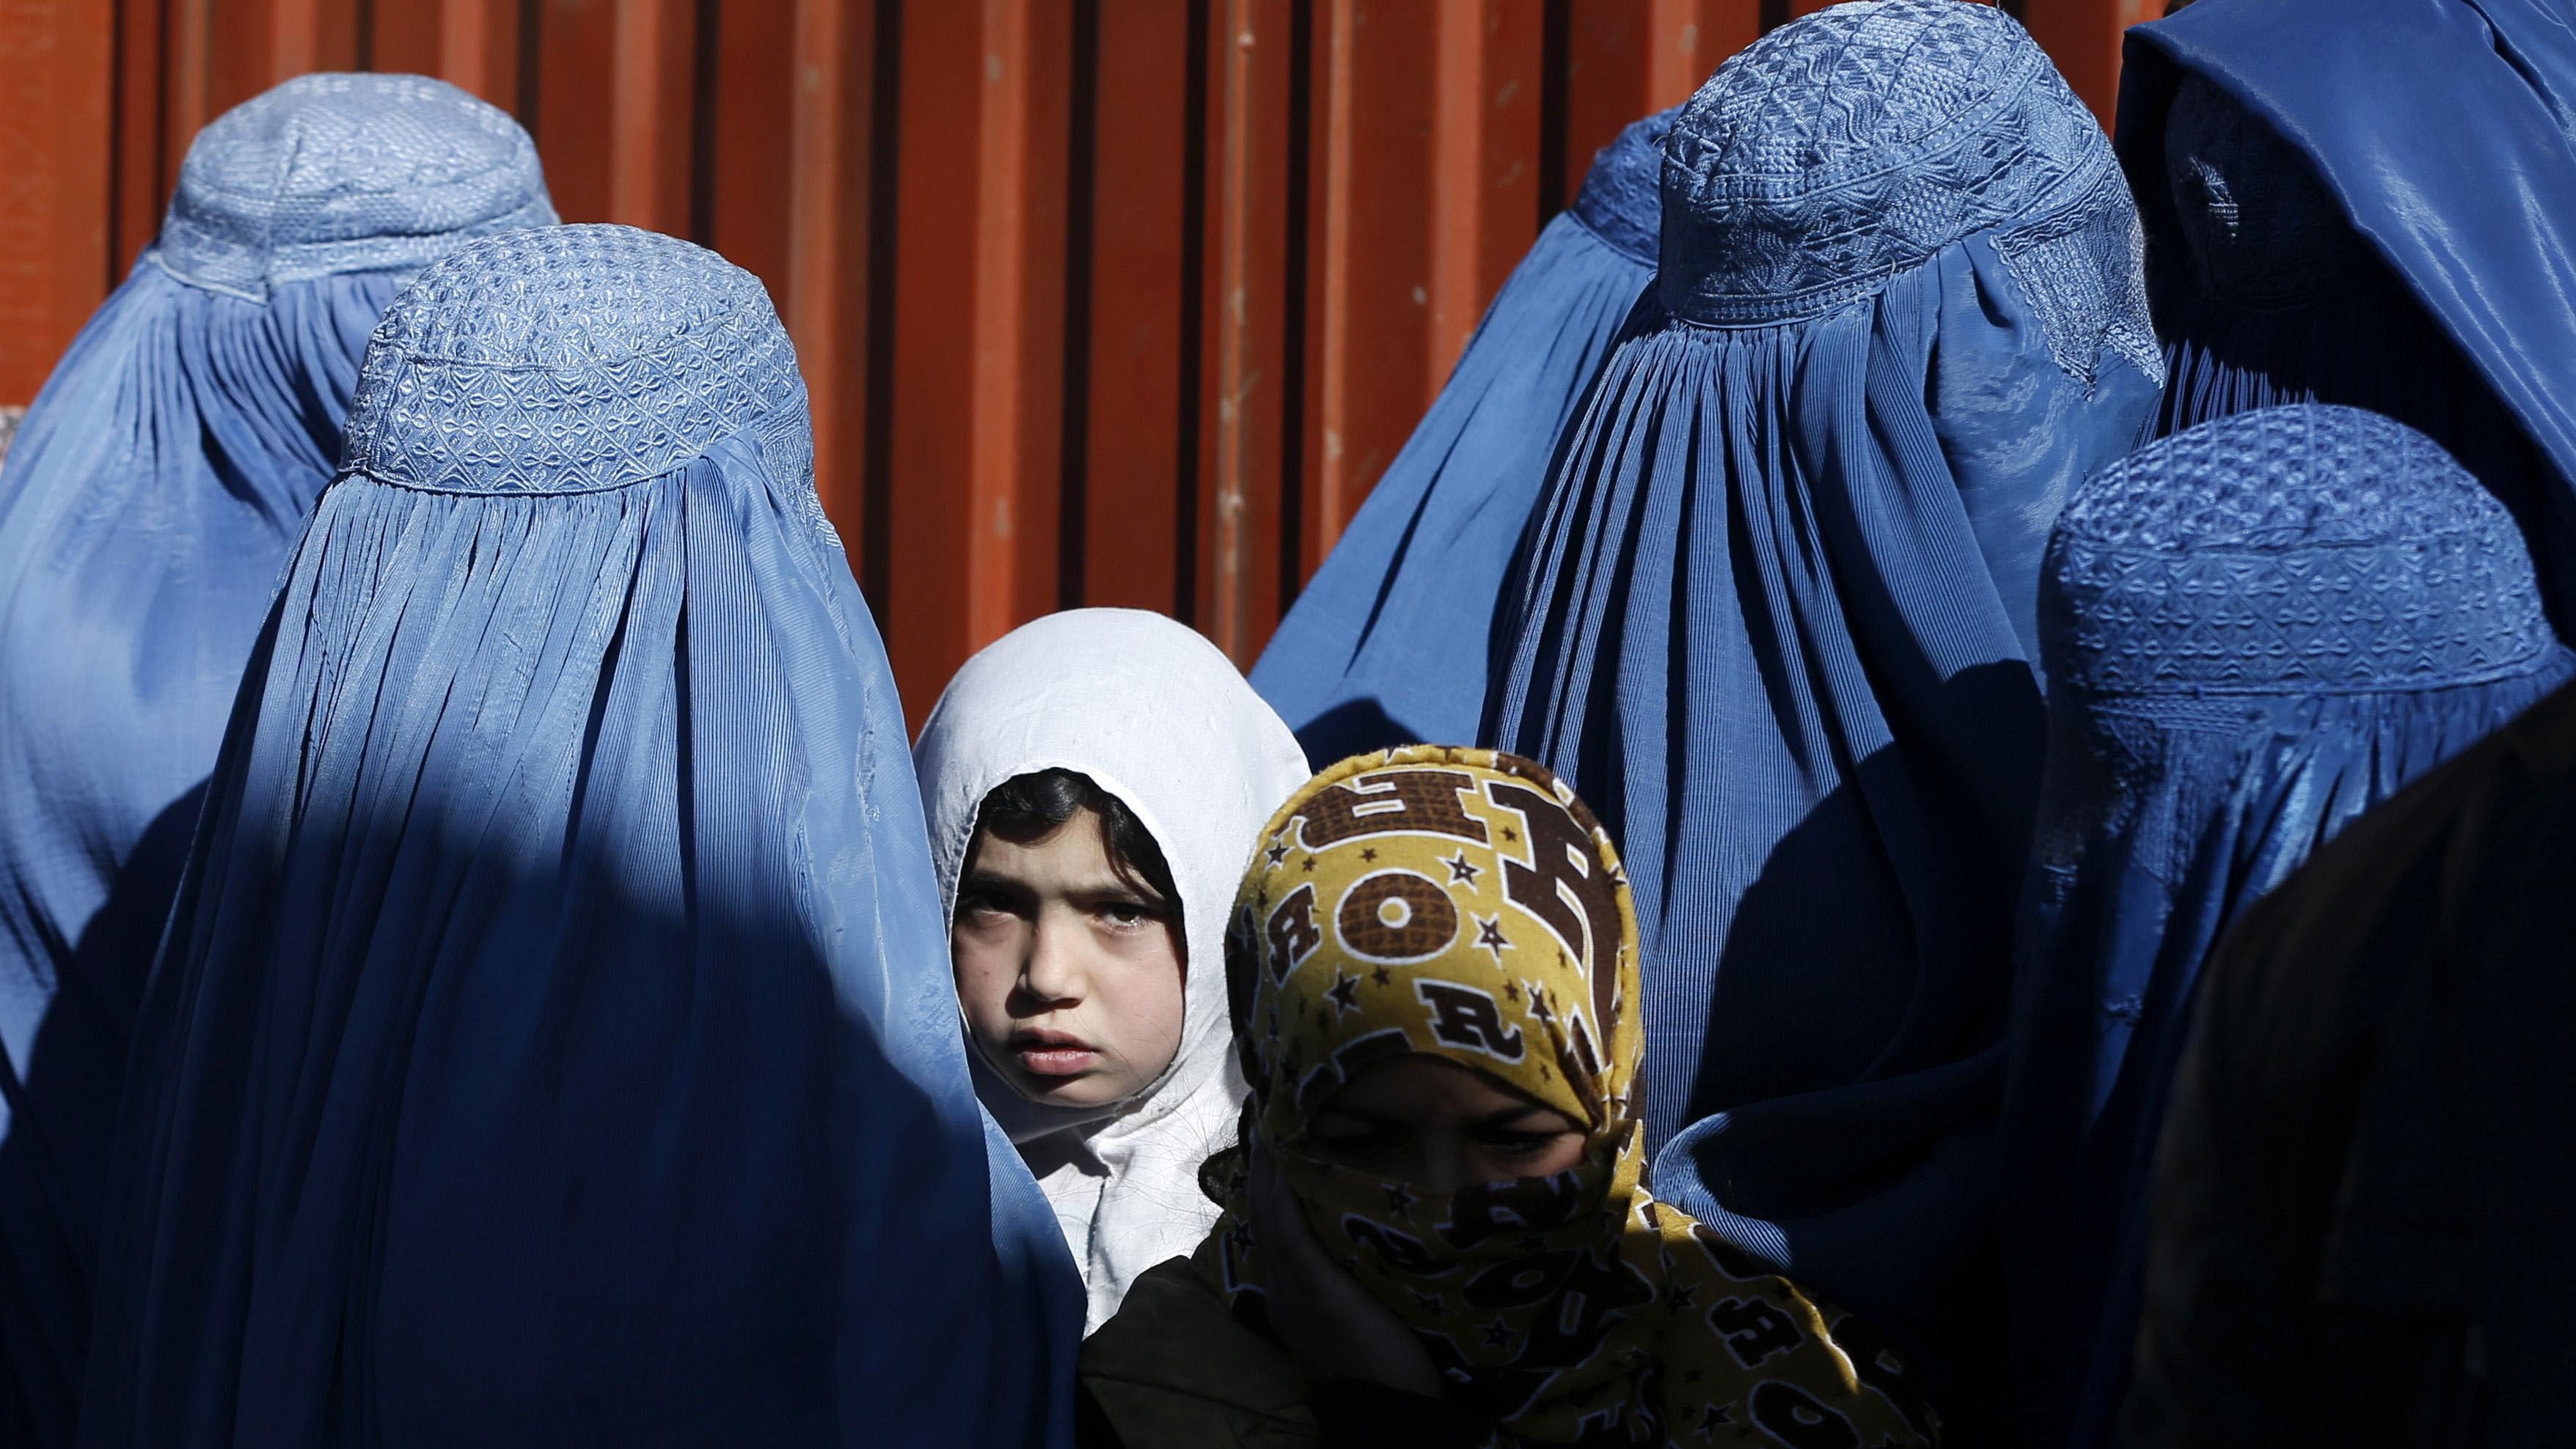 A girl looks on among Afghan women lining up to receive winter relief assistance donated by the UNHCR in Kabul